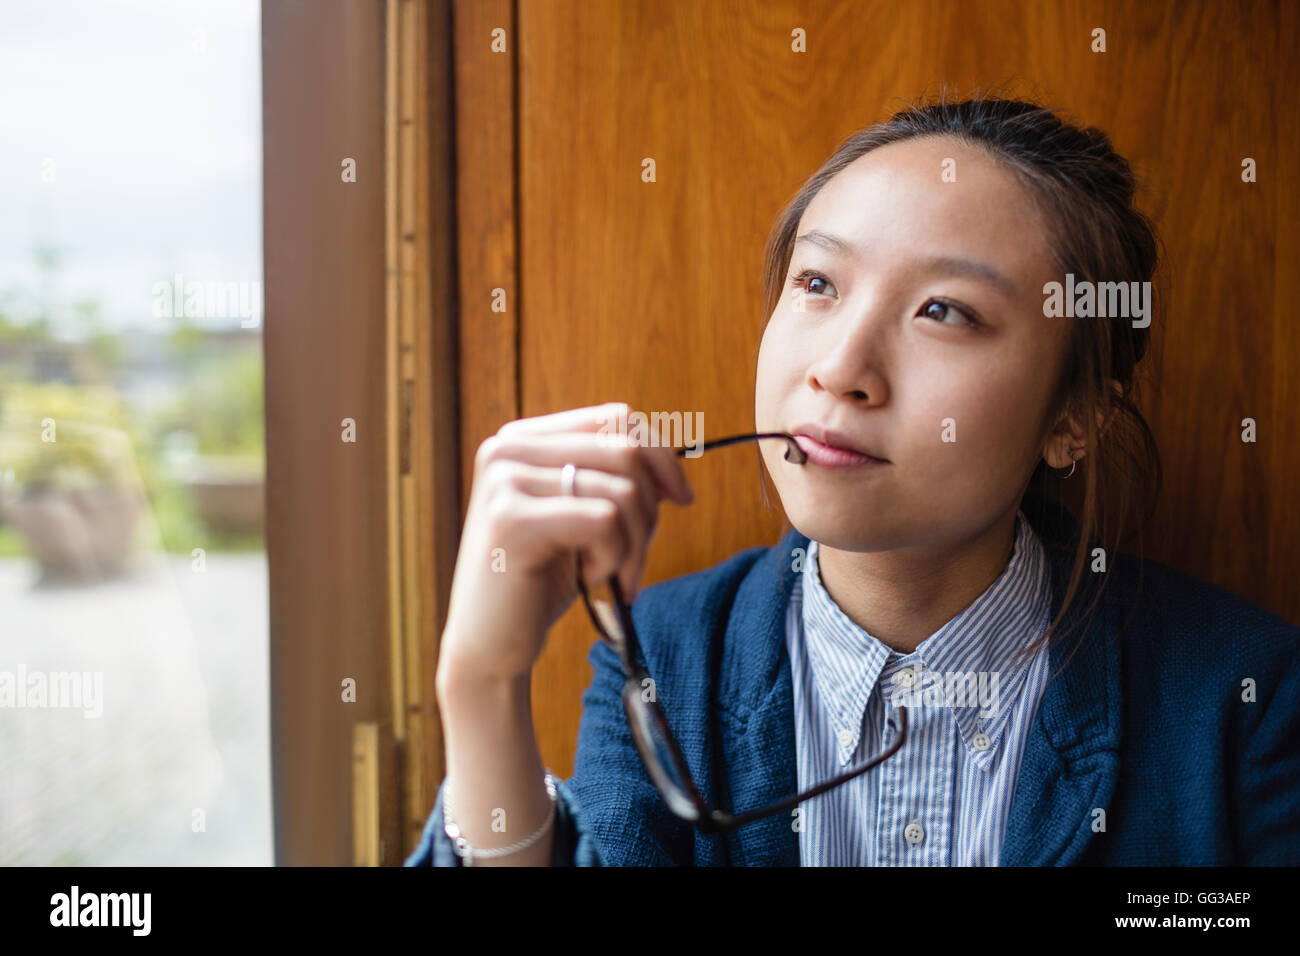 Thoughtful young woman looking through window - Stock Image